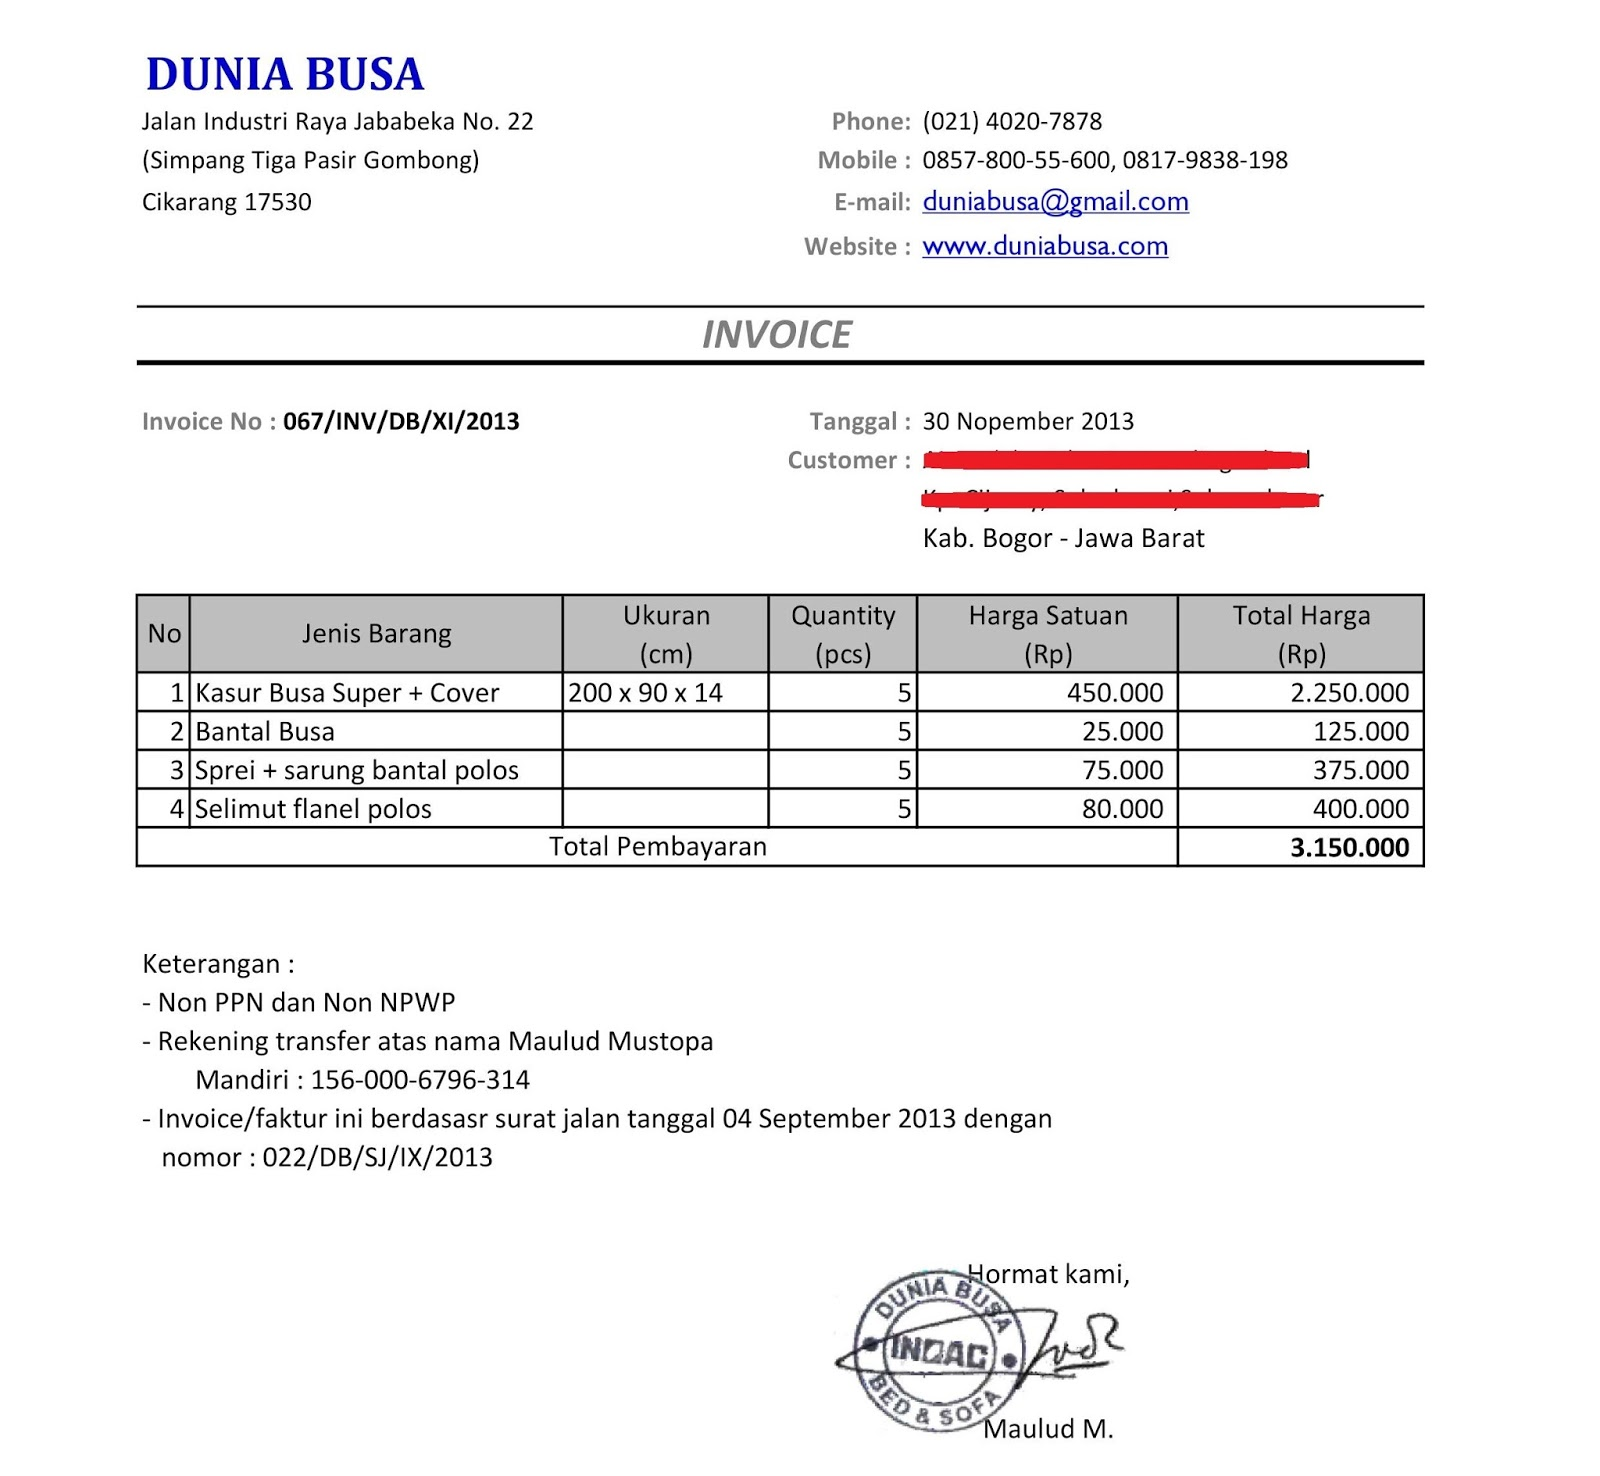 Centralasianshepherdus  Unique Free Invoice Online  Create Invoice Online  Invoice Template  With Likable Contoh Format Invoice Atau Surat Tagihan  Brankas Arsip  Free Invoice Online With Agreeable Microsoft Excel Invoice Also Invoice Slip In Addition Blank Invoice Template For Word And Simple Invoice Word As Well As Invoices Quickbooks Additionally Express Invoice For Mac From Sklepco With Centralasianshepherdus  Likable Free Invoice Online  Create Invoice Online  Invoice Template  With Agreeable Contoh Format Invoice Atau Surat Tagihan  Brankas Arsip  Free Invoice Online And Unique Microsoft Excel Invoice Also Invoice Slip In Addition Blank Invoice Template For Word From Sklepco